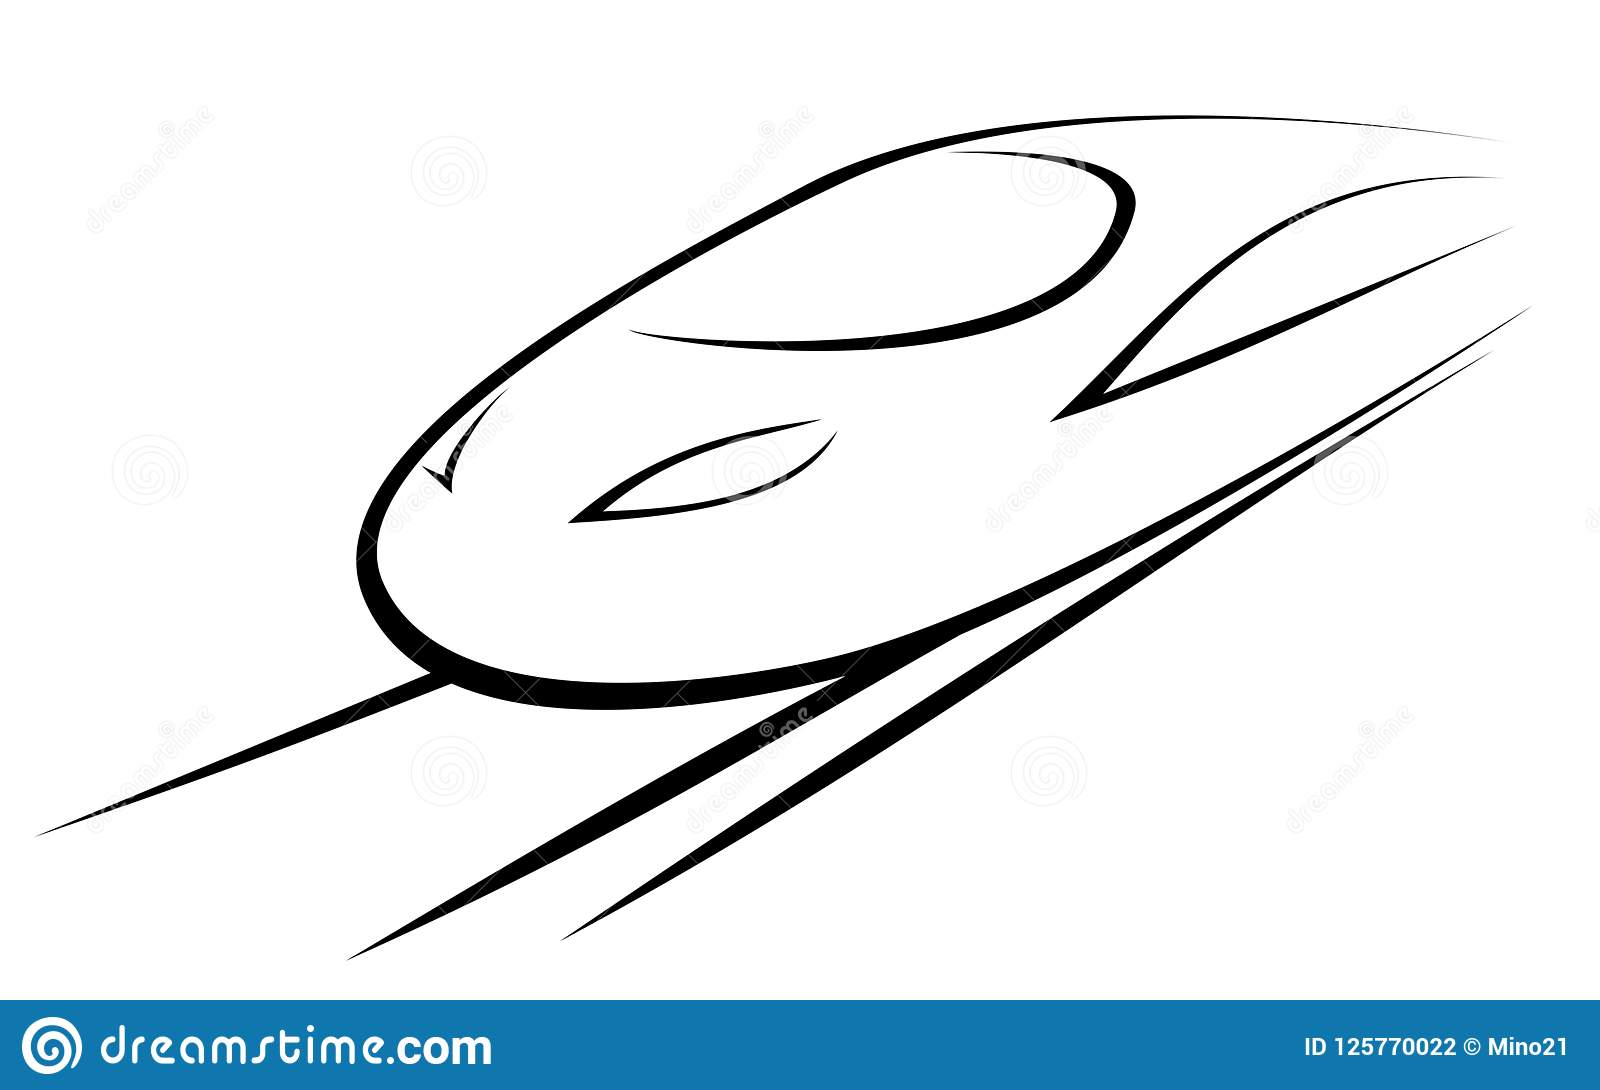 Vector Illustration Of A High-speed Train Stock Vector